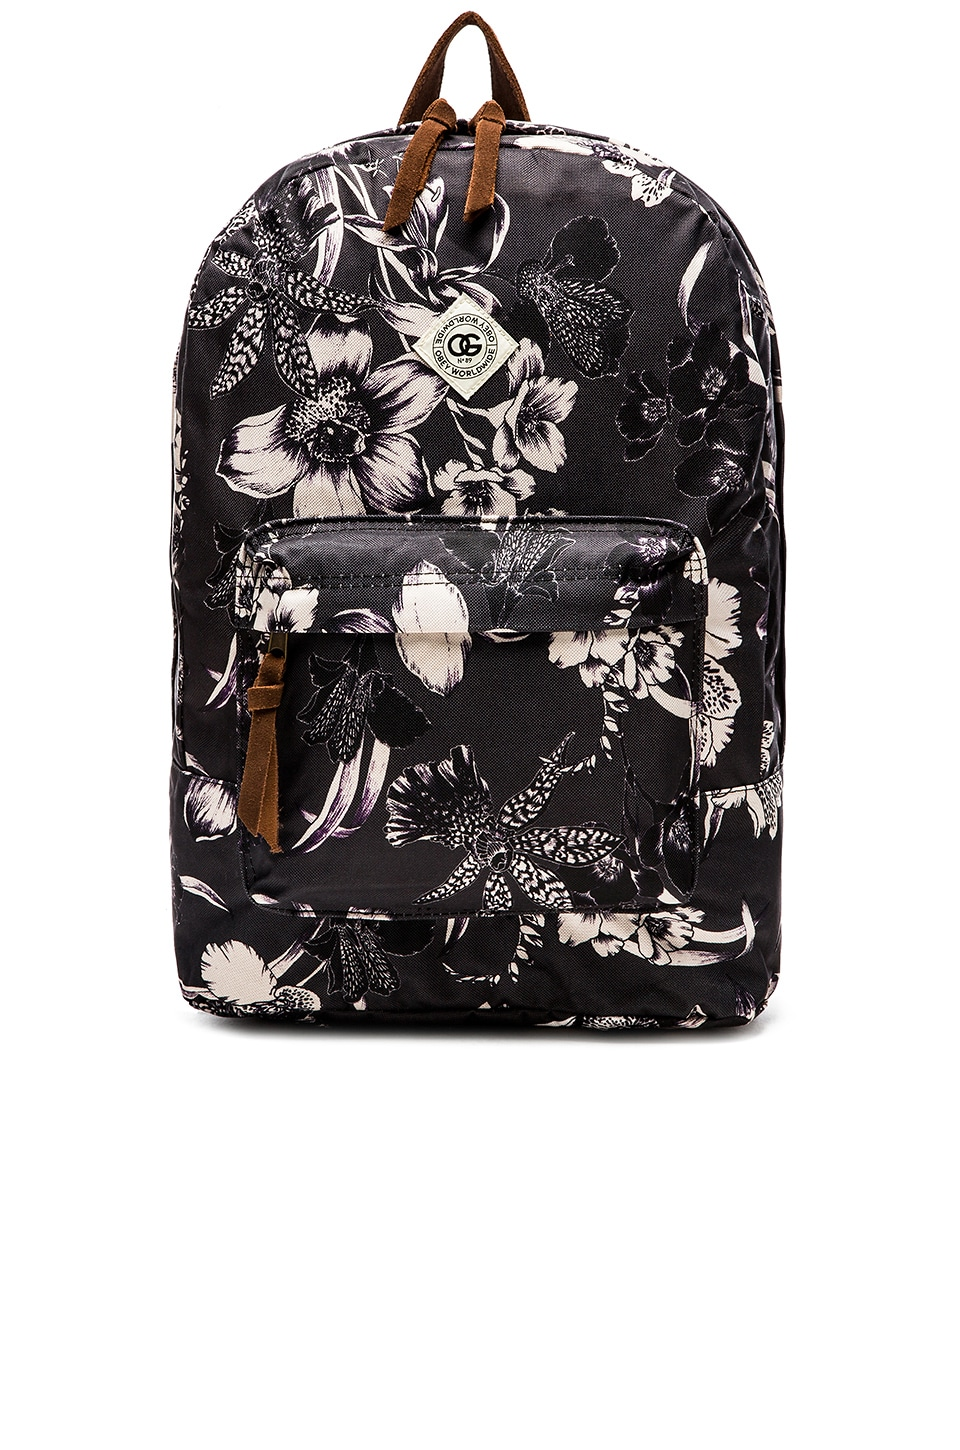 Obey Dark Orchid Backpack in Black Multi